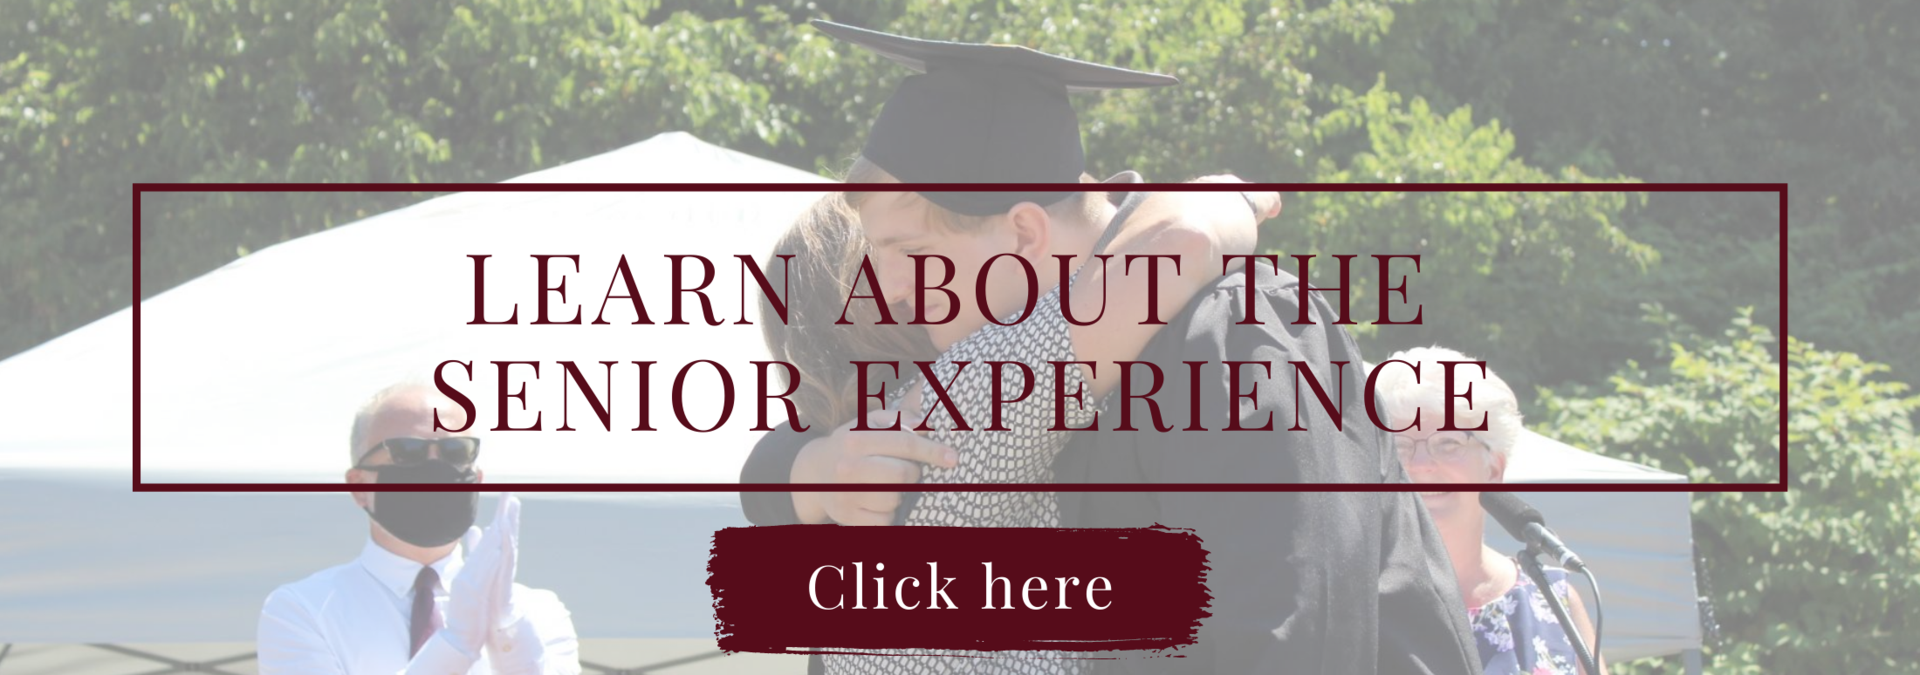 Learn about the Senior experience